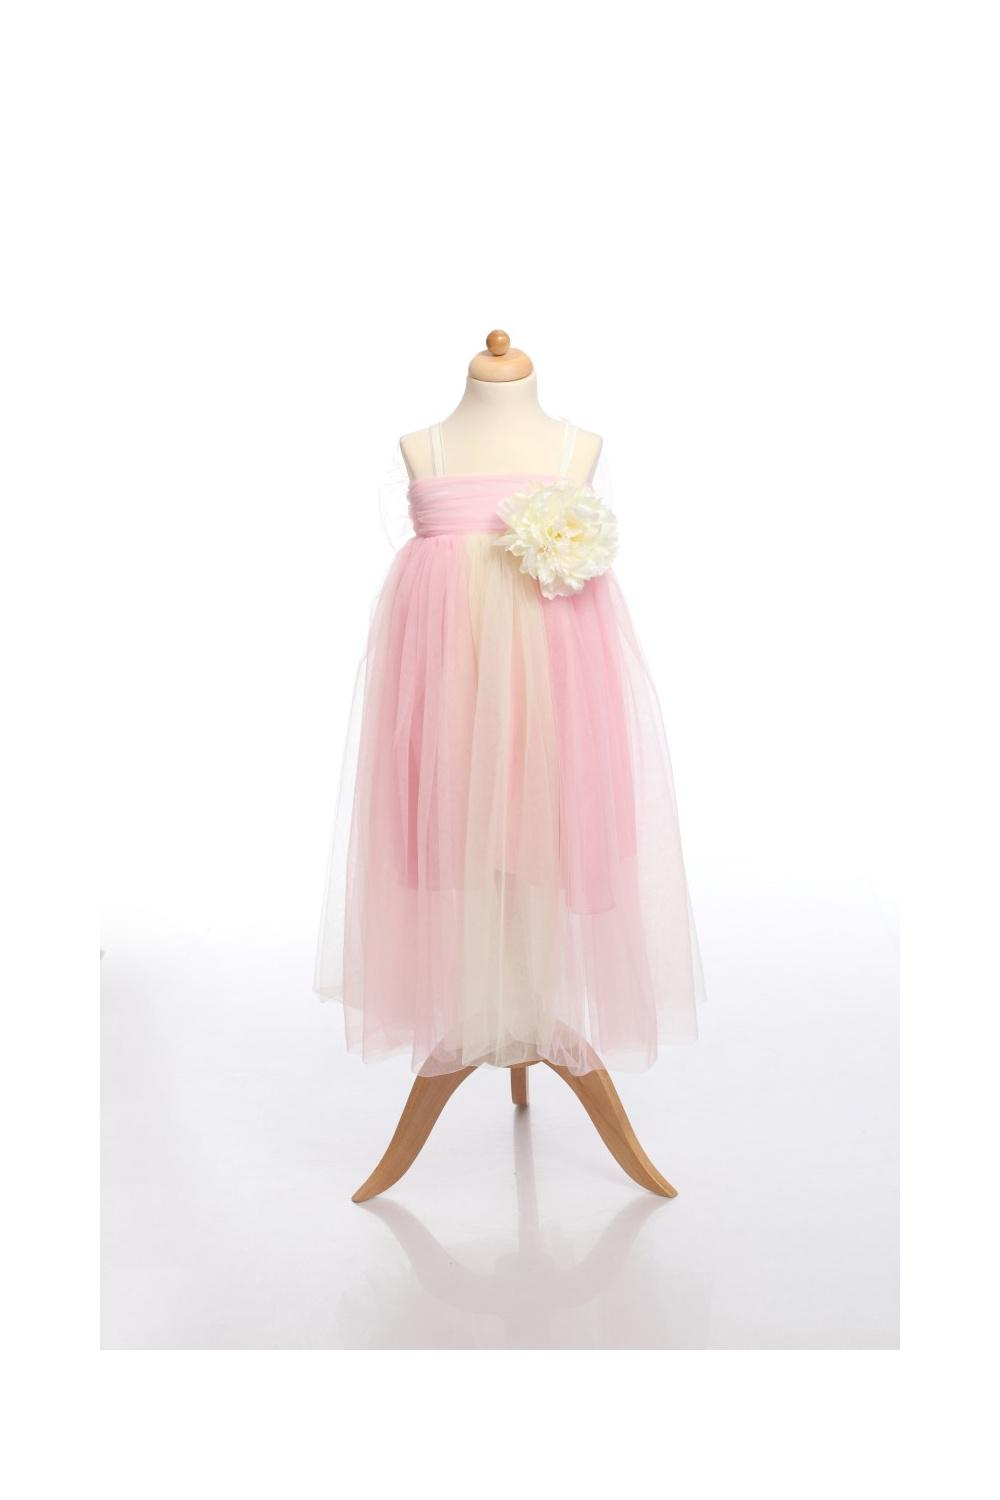 "Girls gown ""Summer's favorite"""